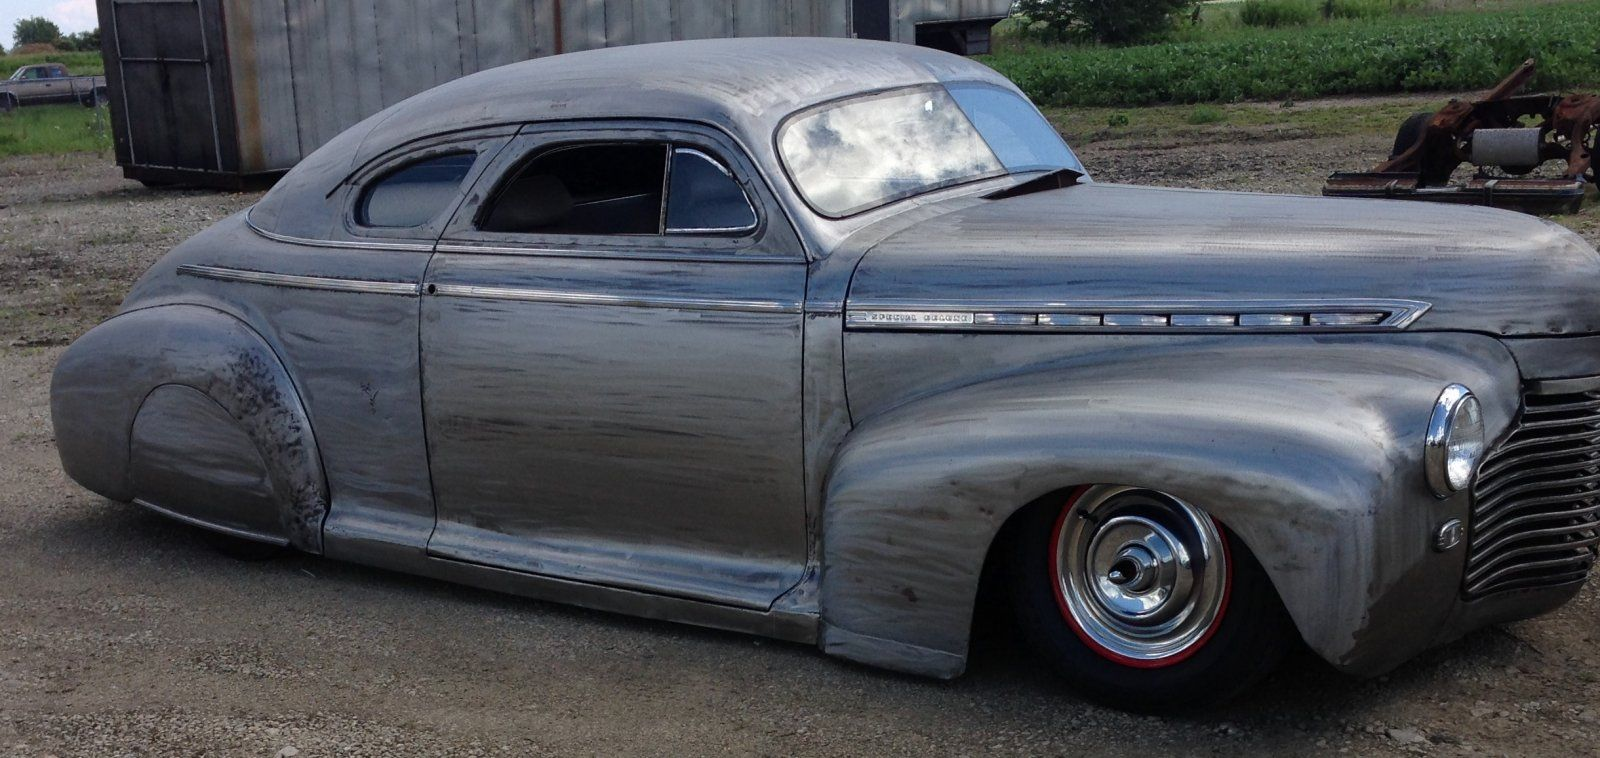 Pickup 41 chevy pickup : 1941 chevy biz coupe chopped and bagged   The H.A.M.B.   Hot Rods ...